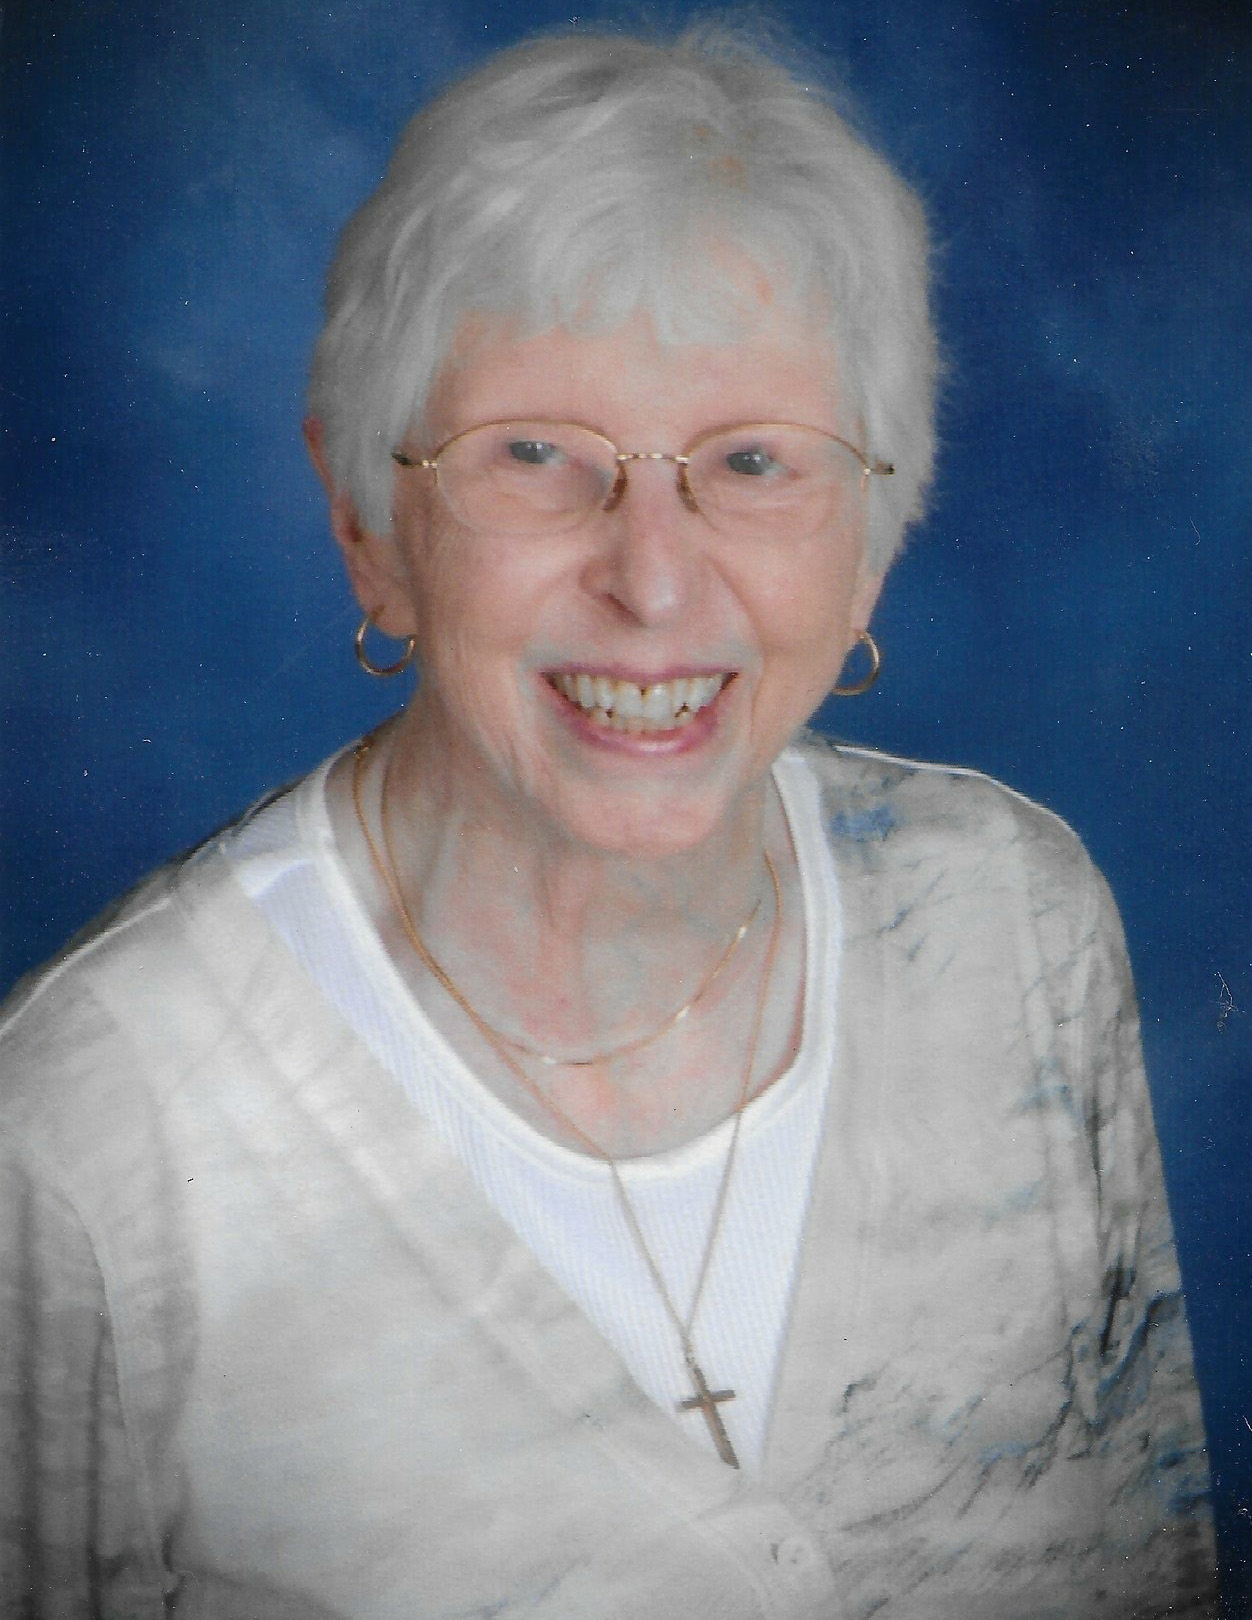 Harriet King Vivion taught at Granbery Elementary in Davidson County, Tennessee for many years.